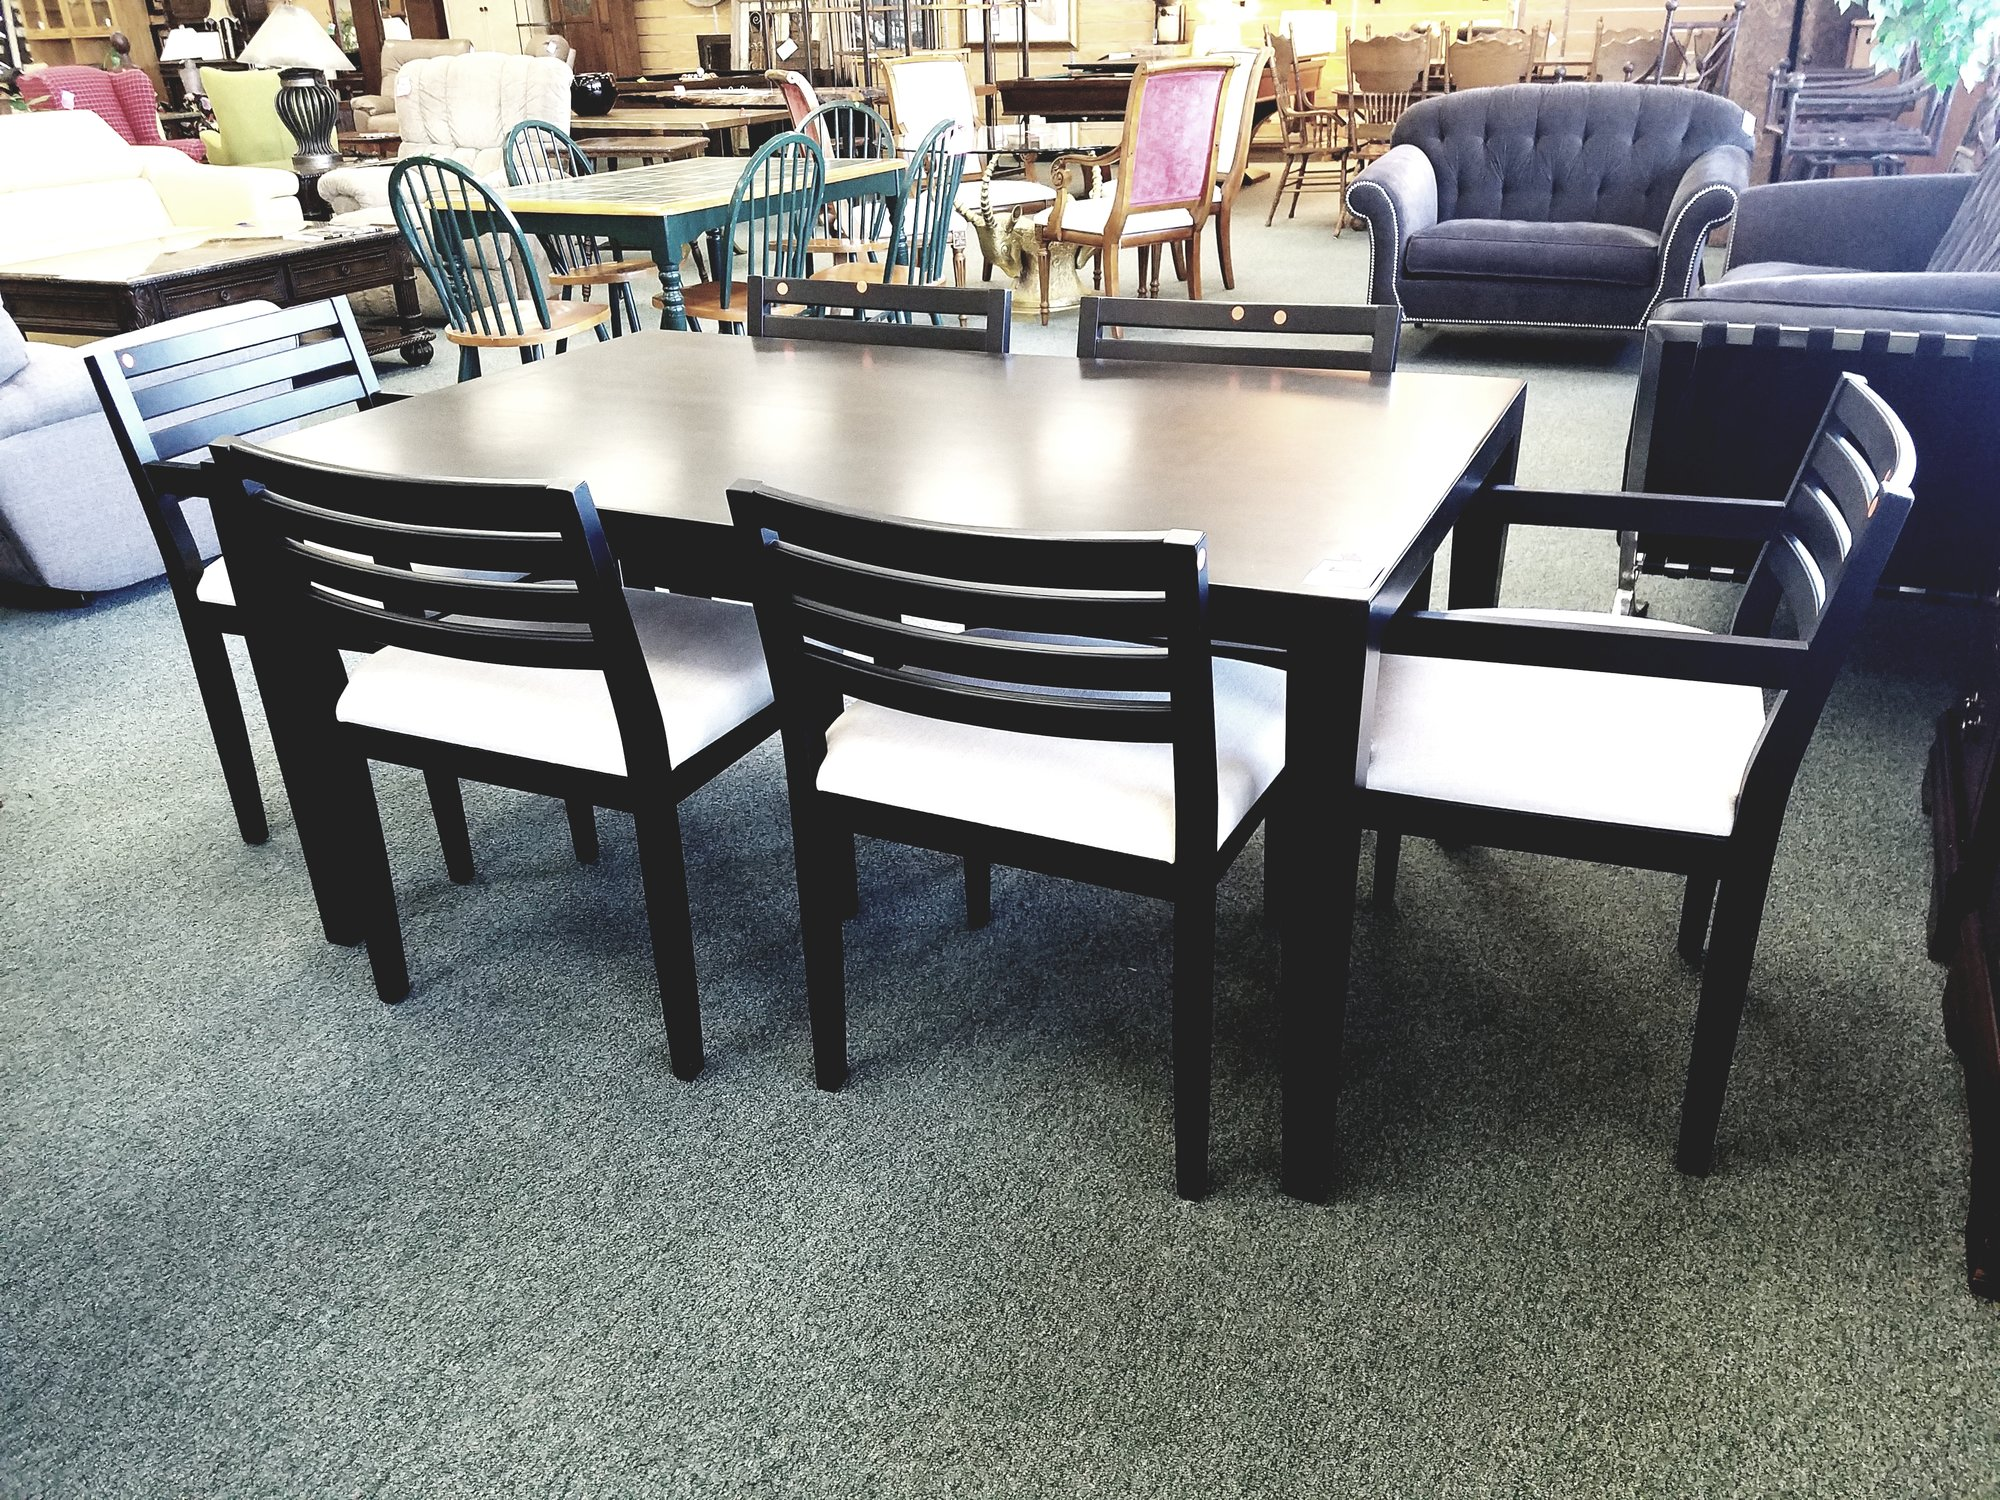 R B Table 6 Chairs Consign Furniture R E N O